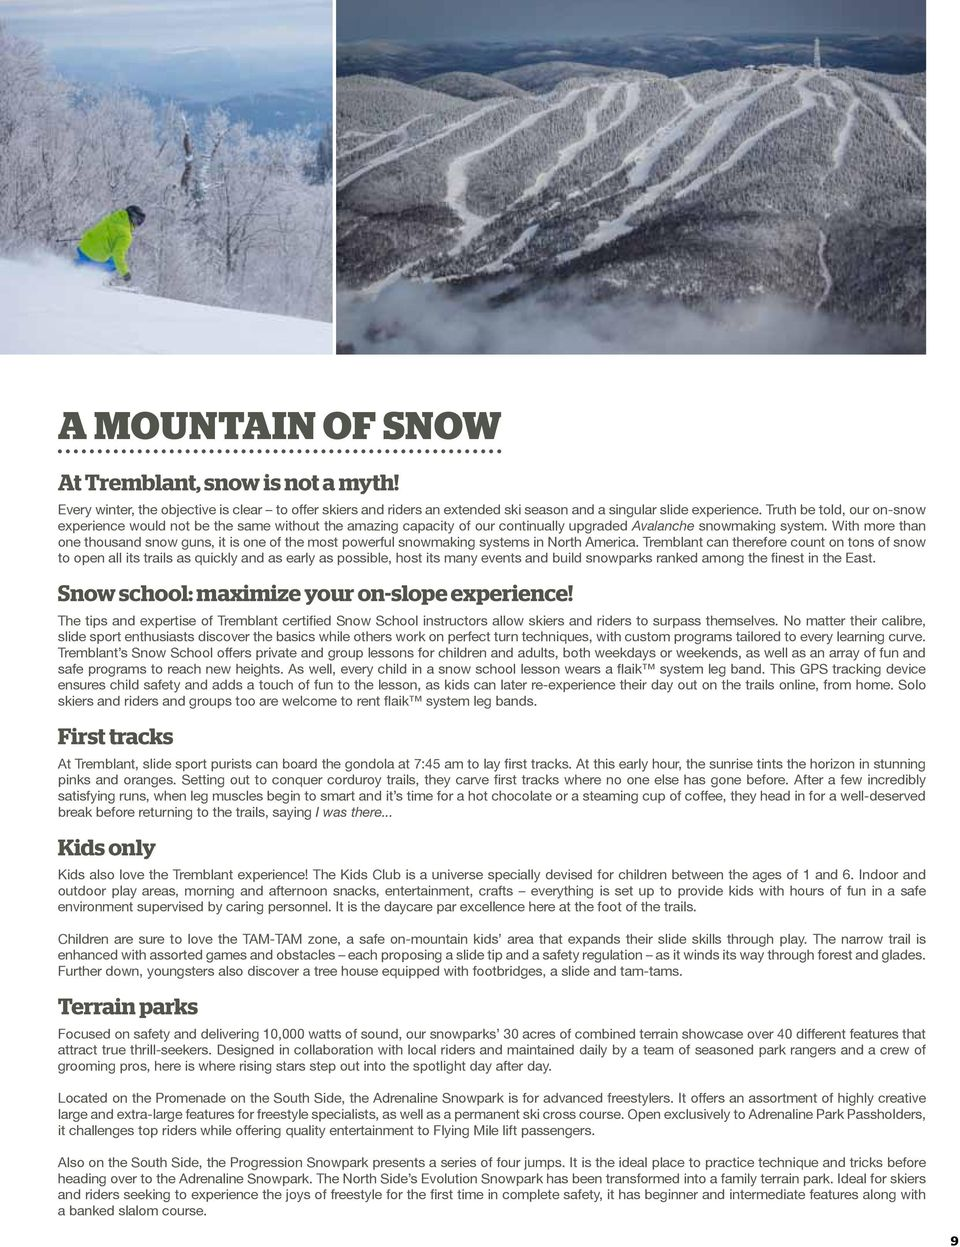 With more than one thousand snow guns, it is one of the most powerful snowmaking systems in North America.